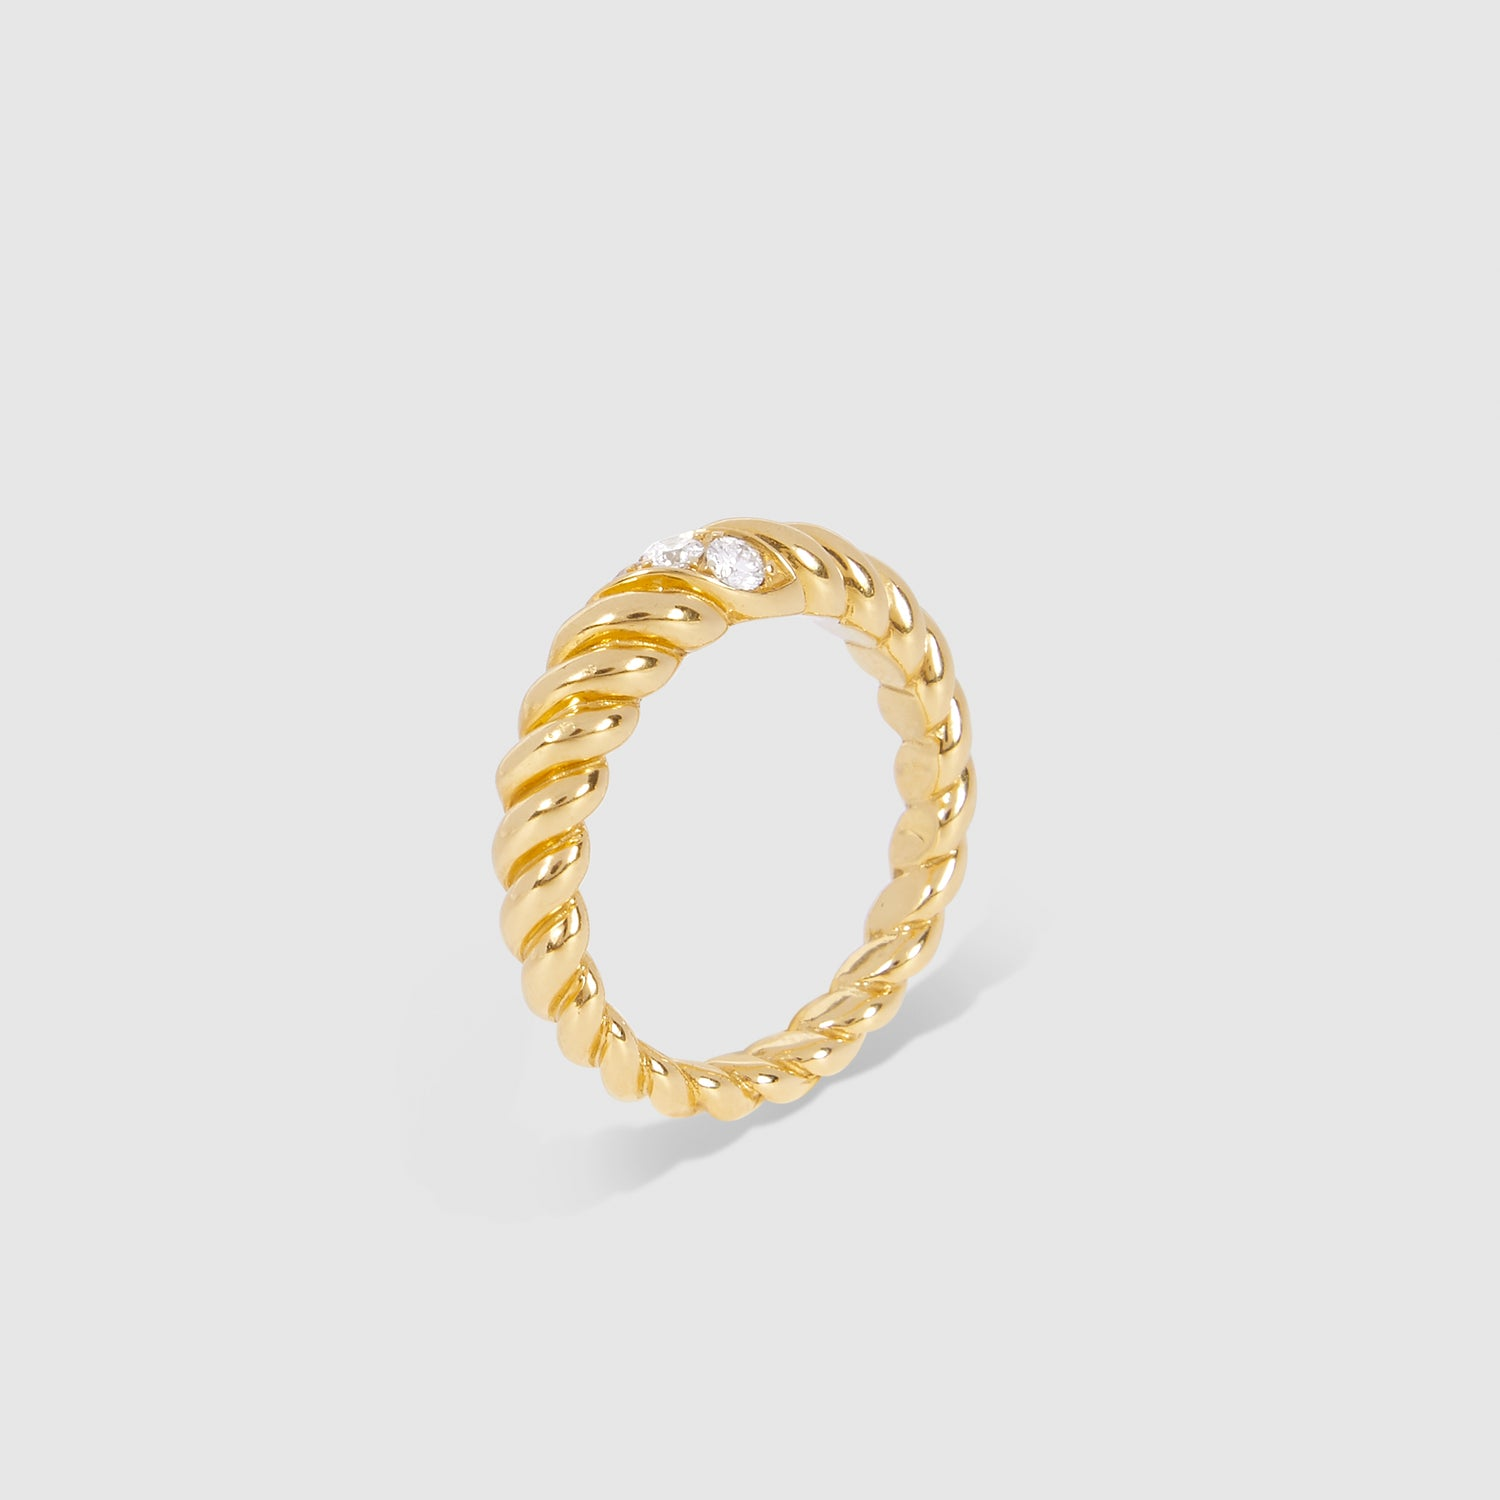 Scale Rope Ring